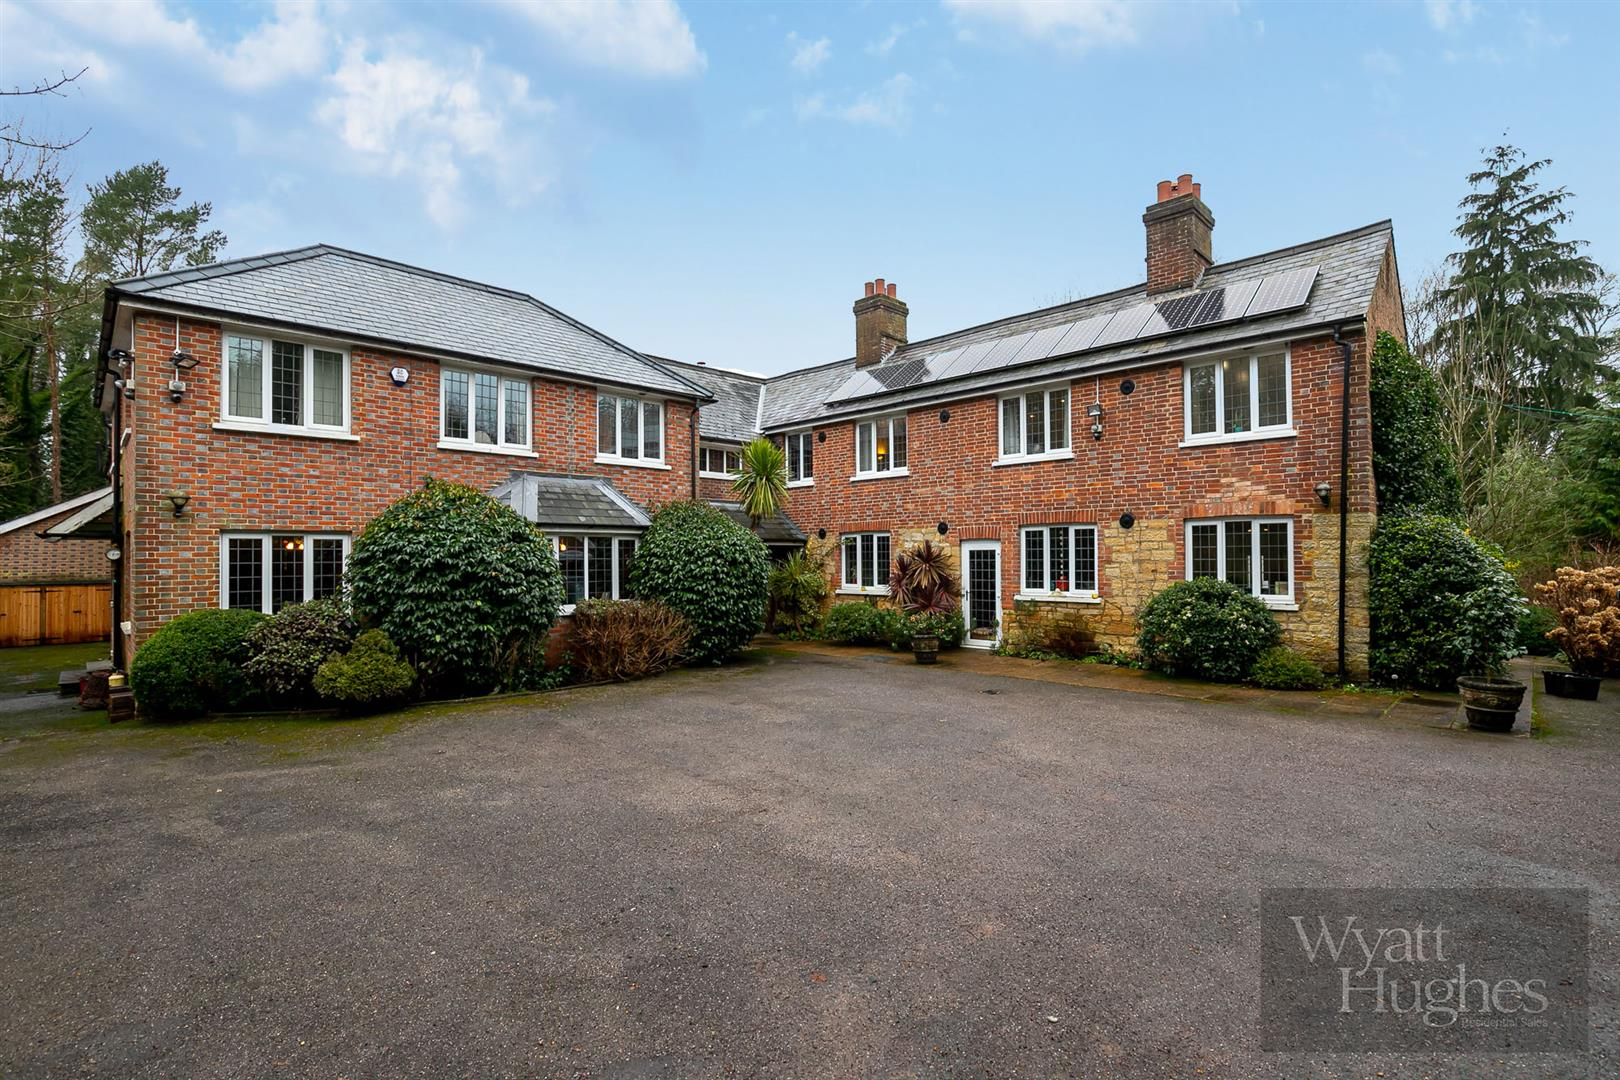 7 bed house for sale in North Trade Road, Battle, TN33